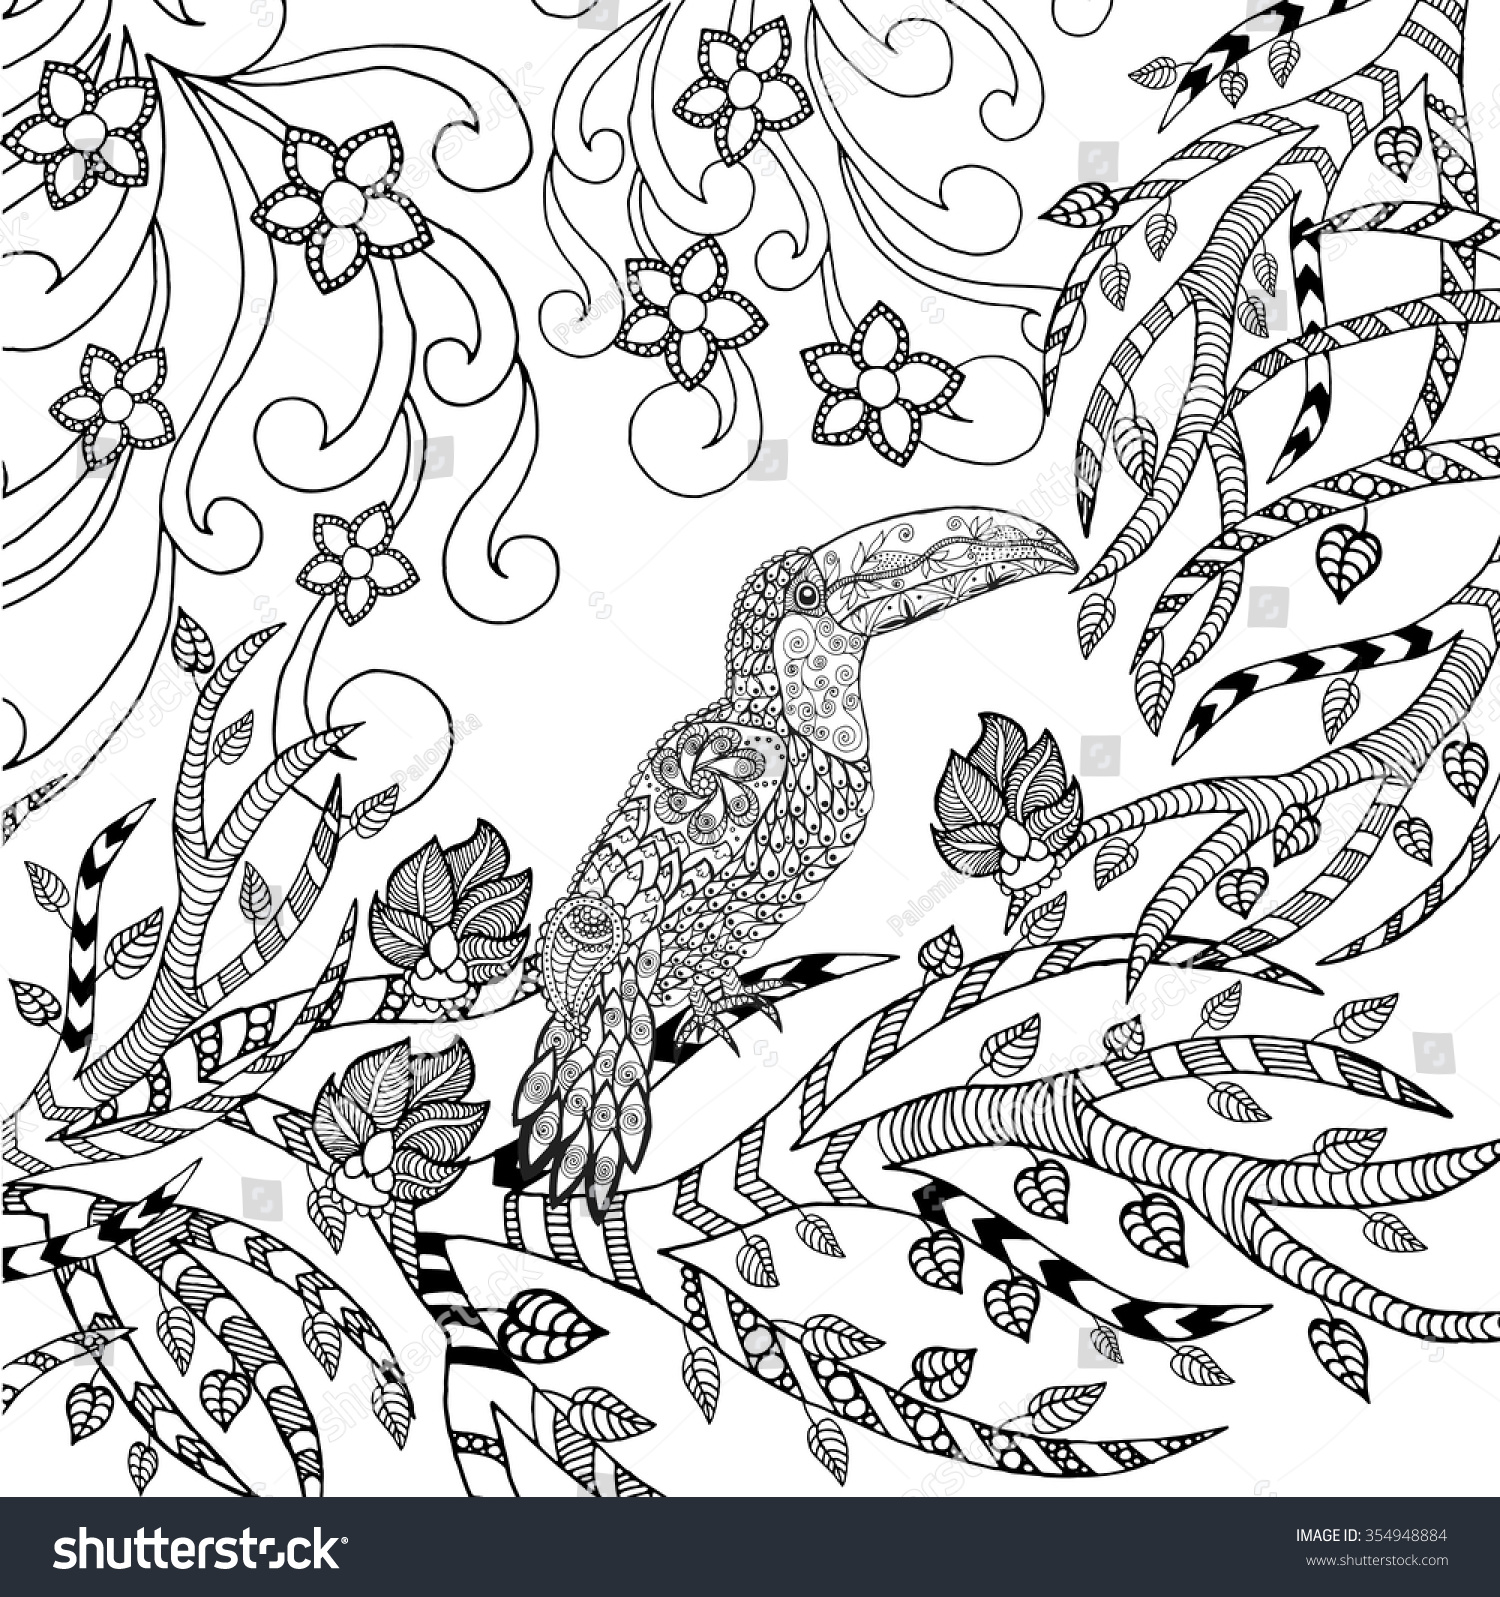 Adult Top Toucan Coloring Pages Images top toucan coloring page animals hand drawn doodle ethnic patterned save to a lightbox images